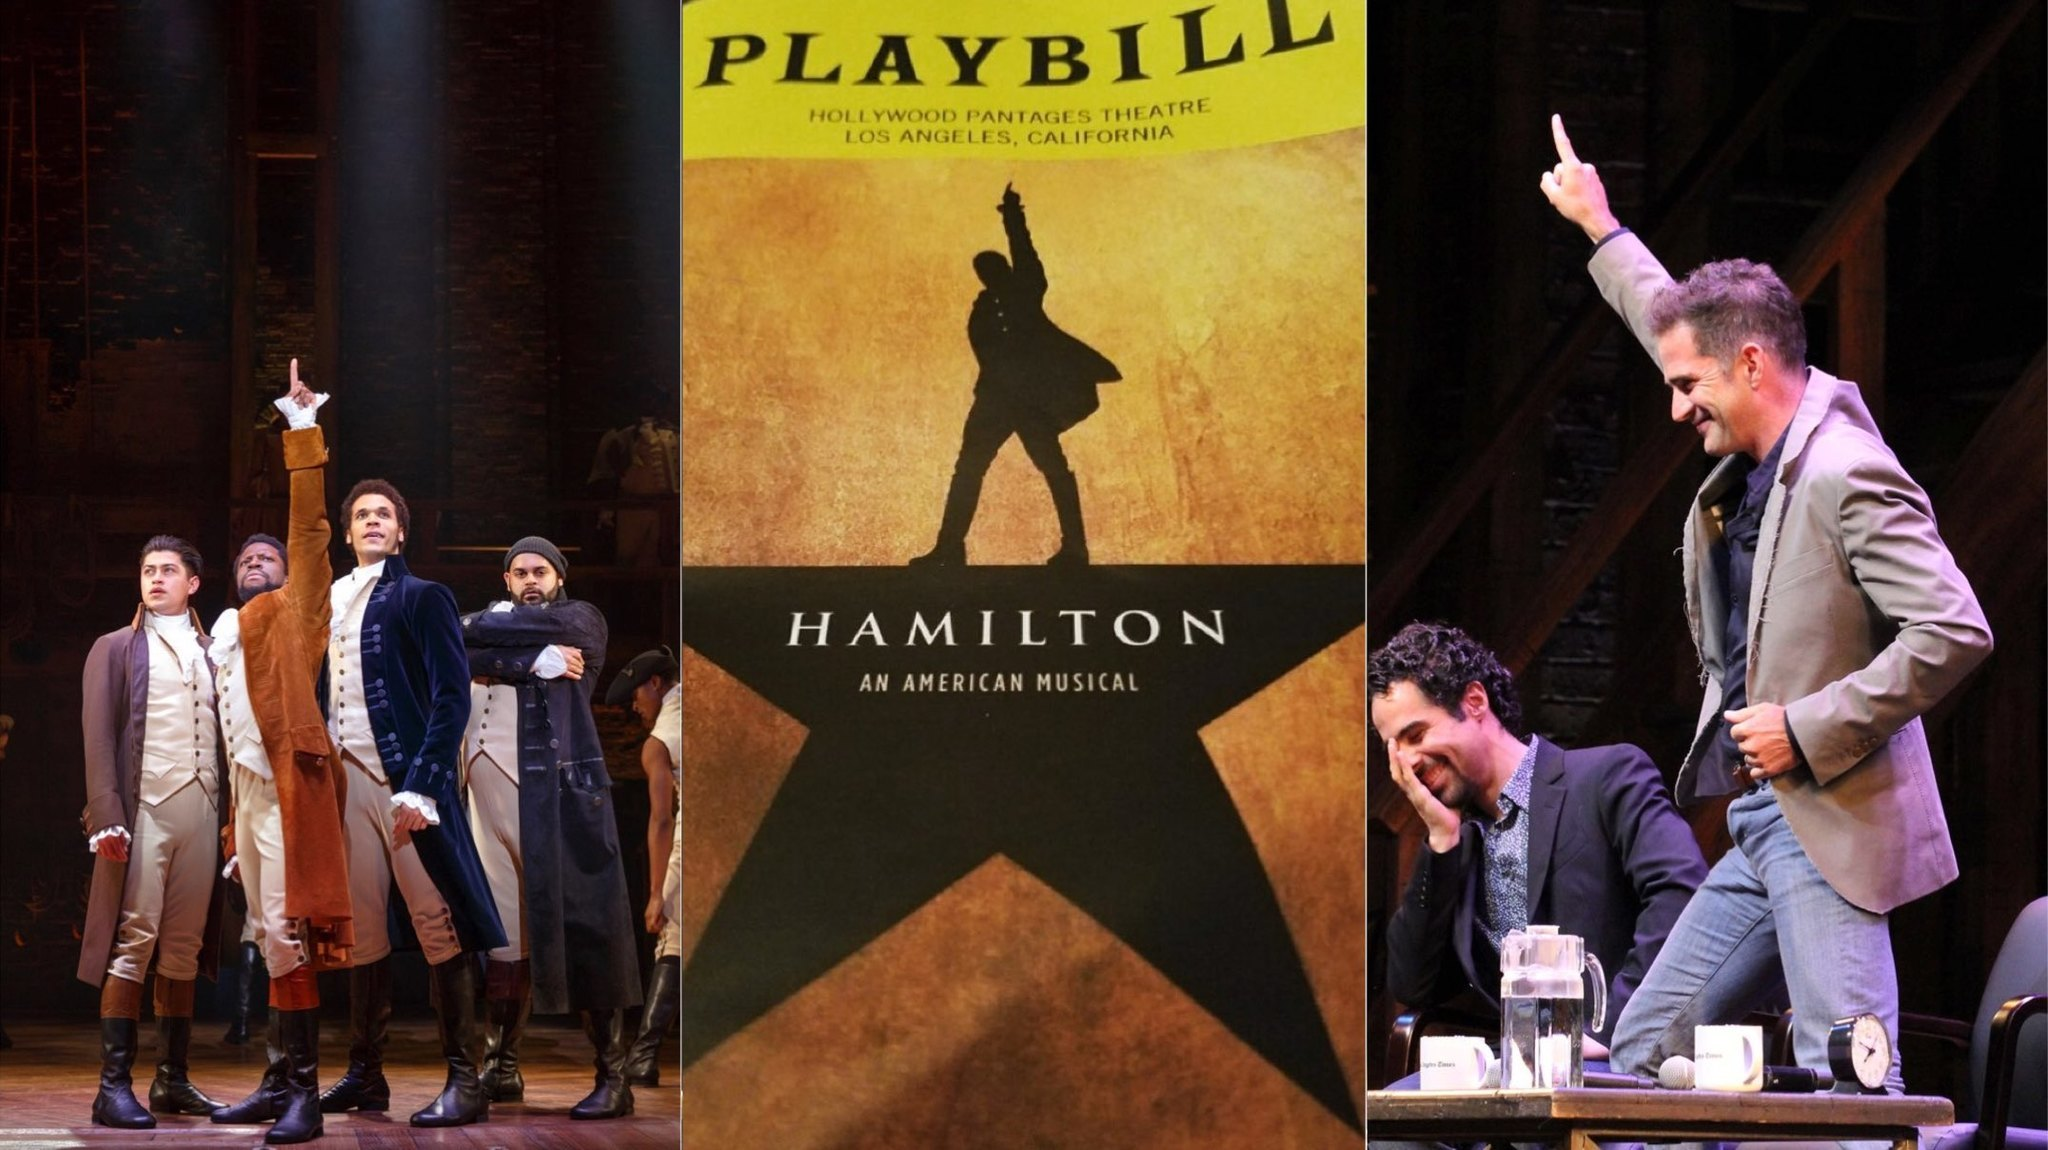 How the 'Hamilton' silhouette became the musical's iconic image